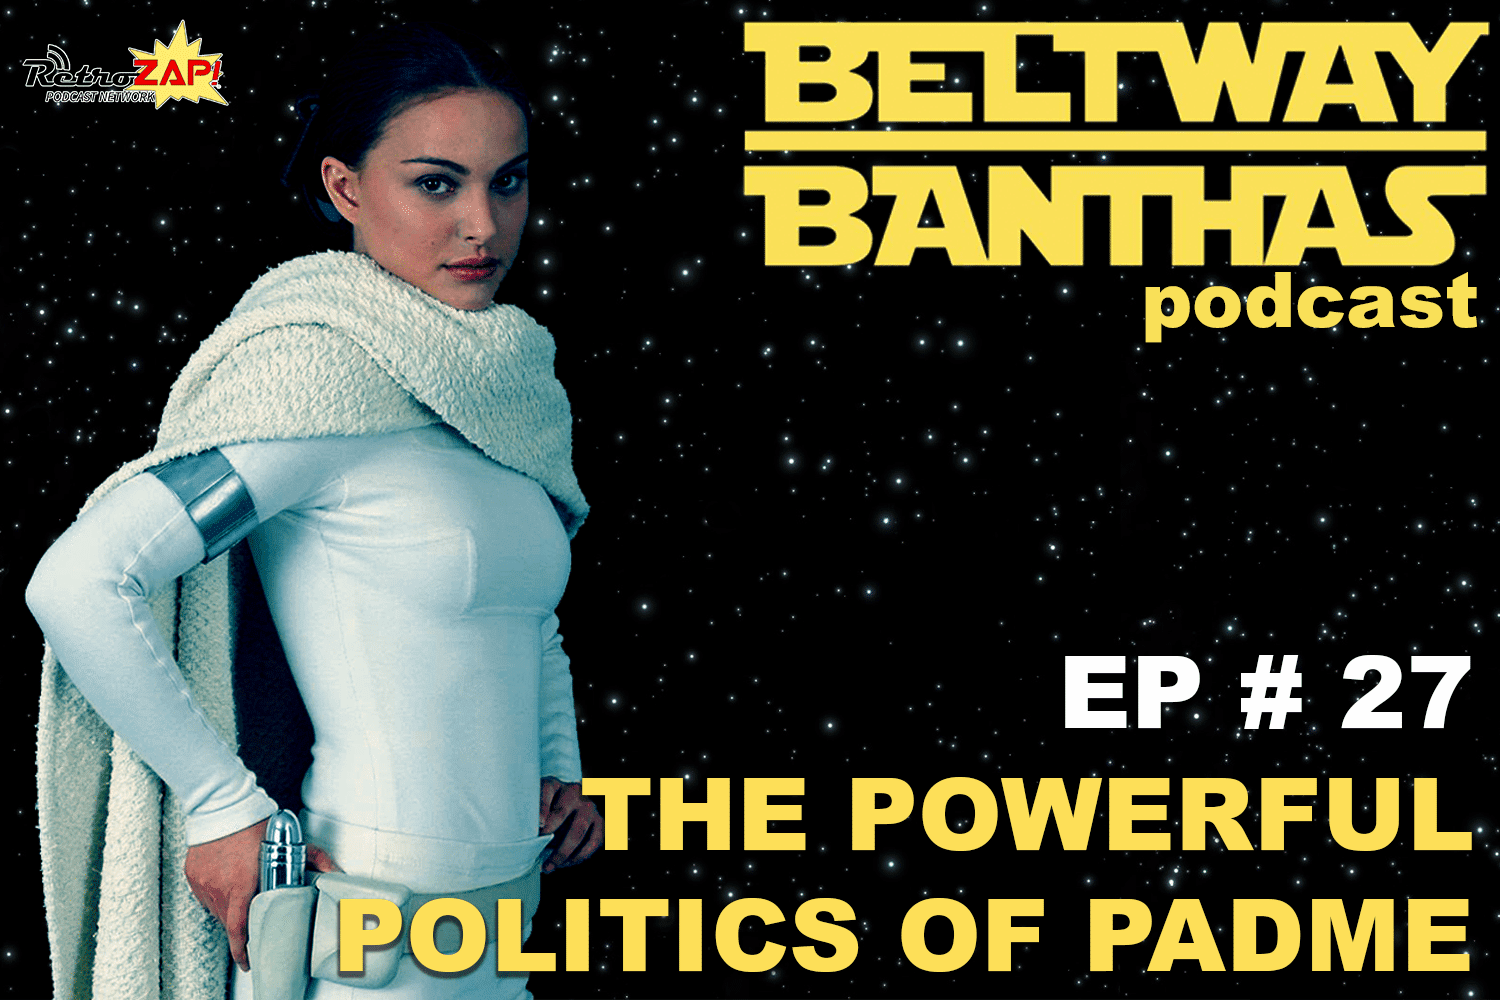 Beltway Banthas #27: The Powerful Politics of Padme